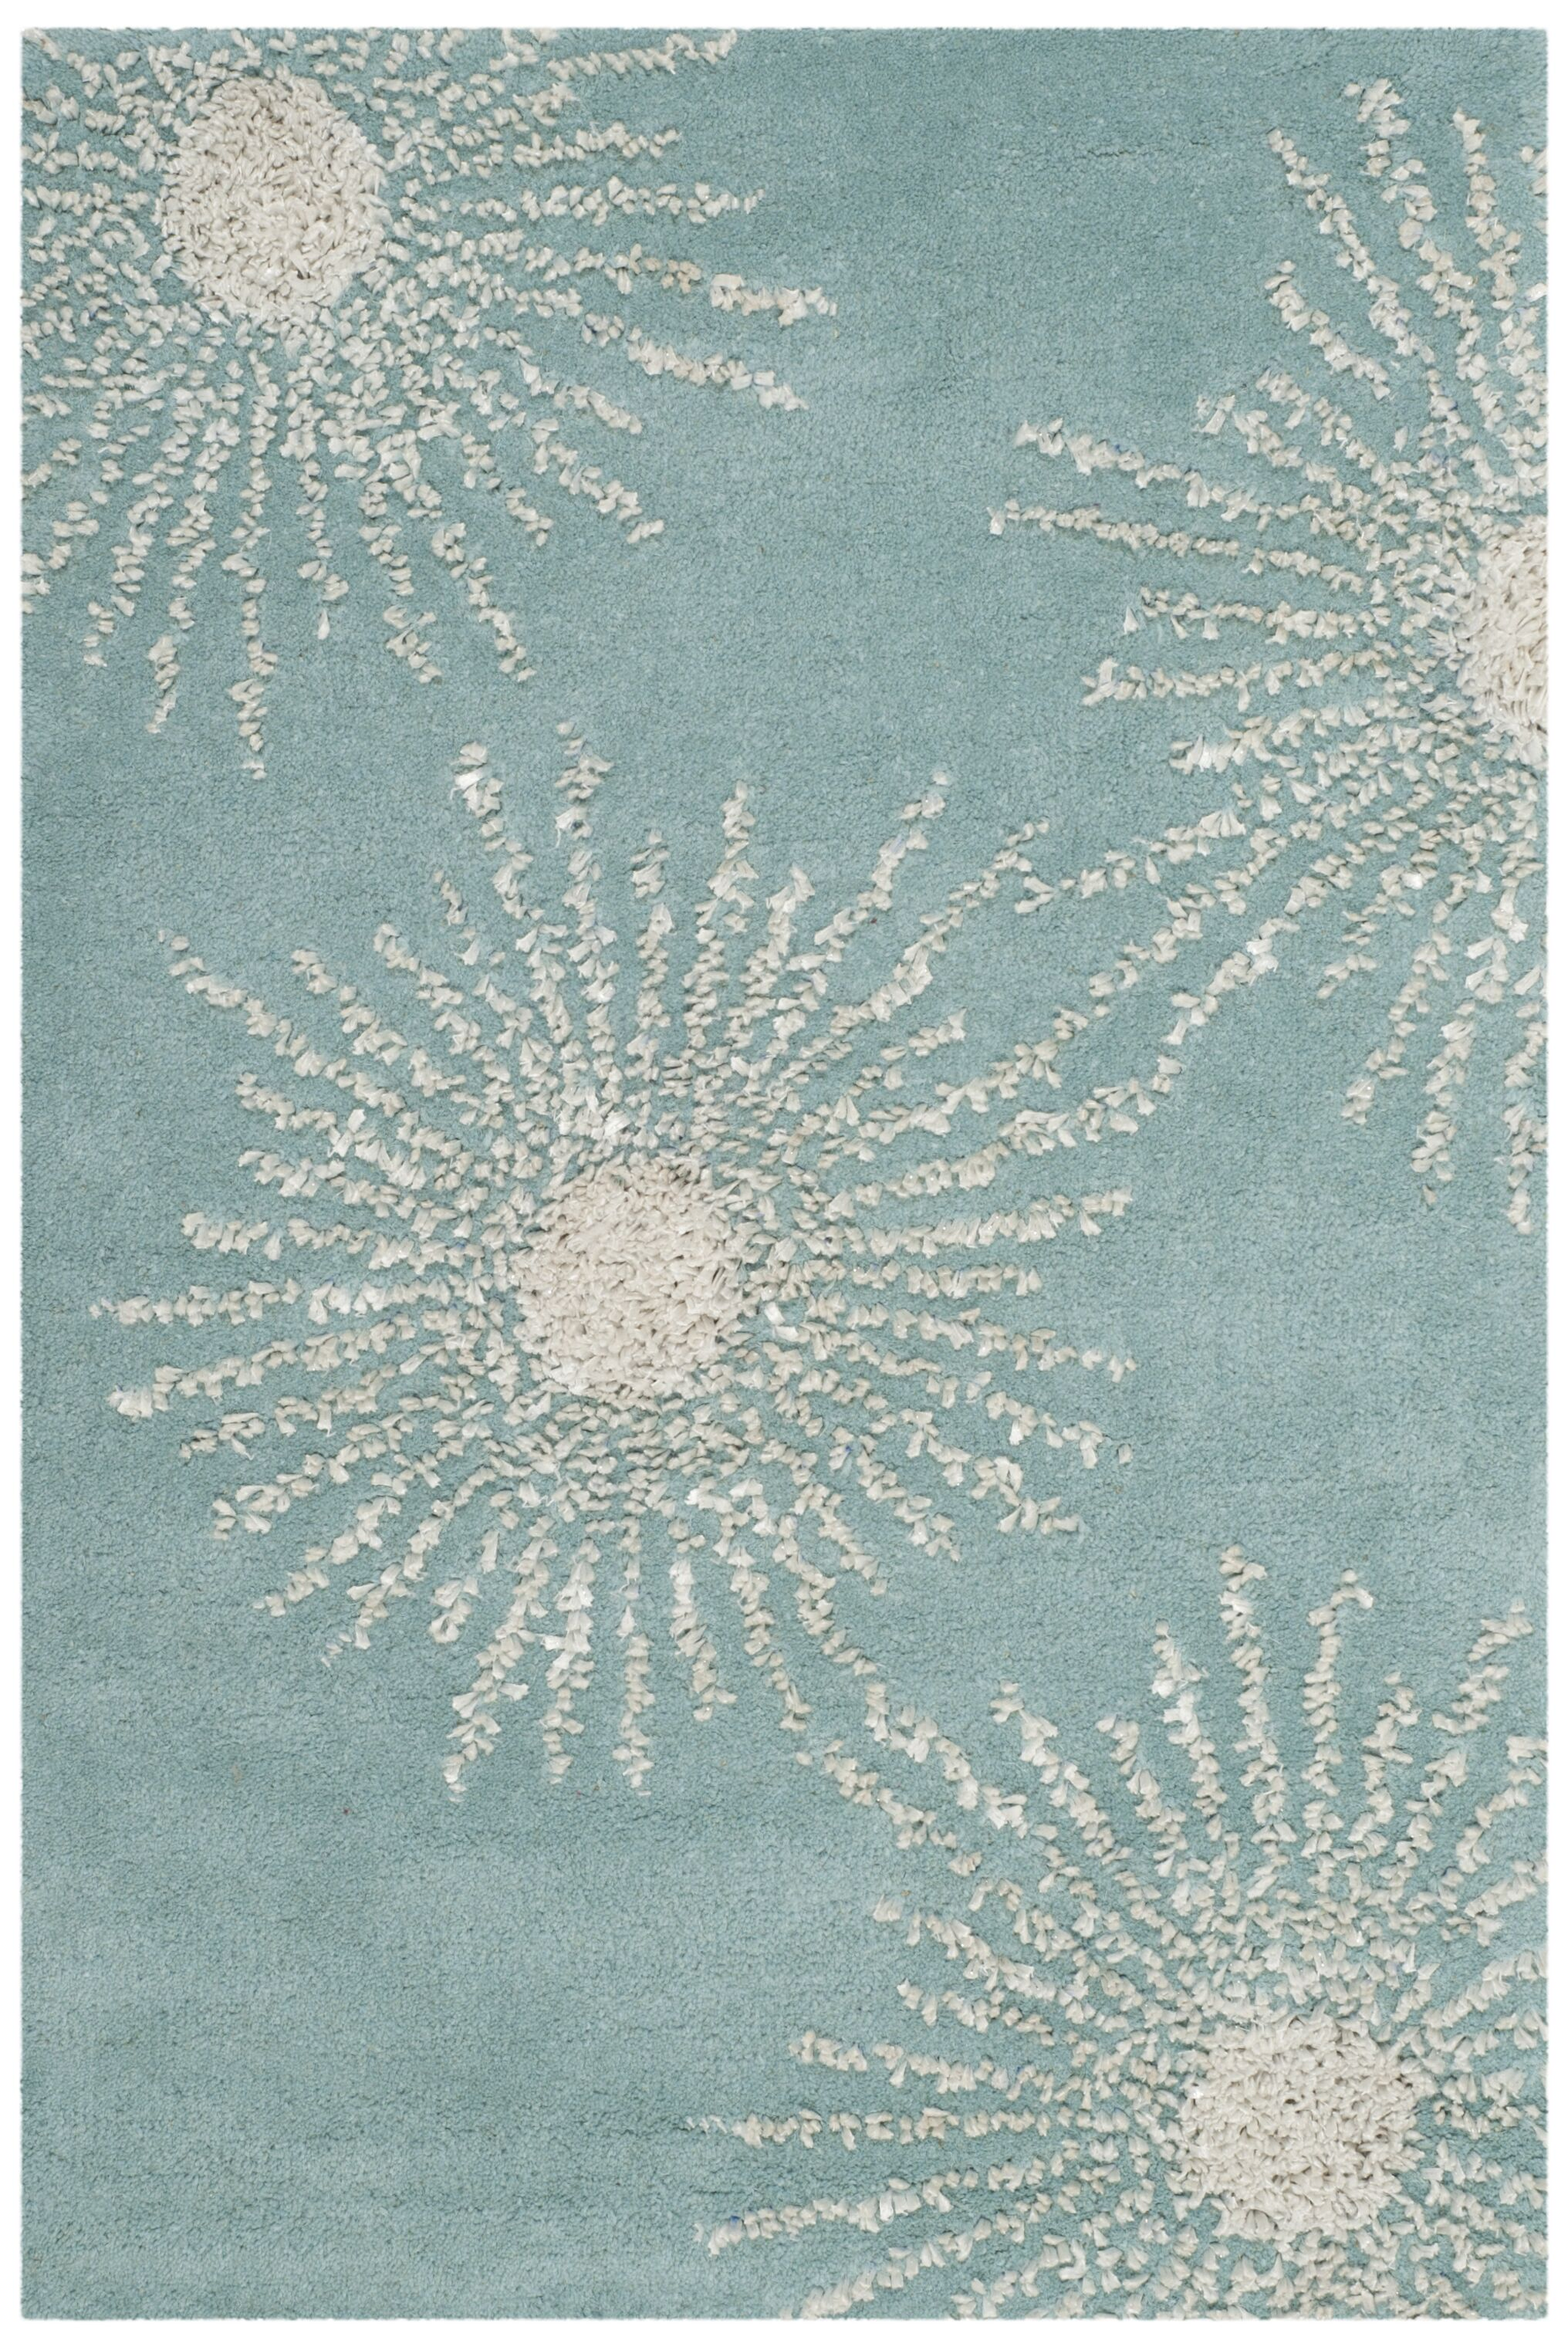 Germain Hand-Tufted Green Area Rug Rug Size: Rectangle 5' x 8'